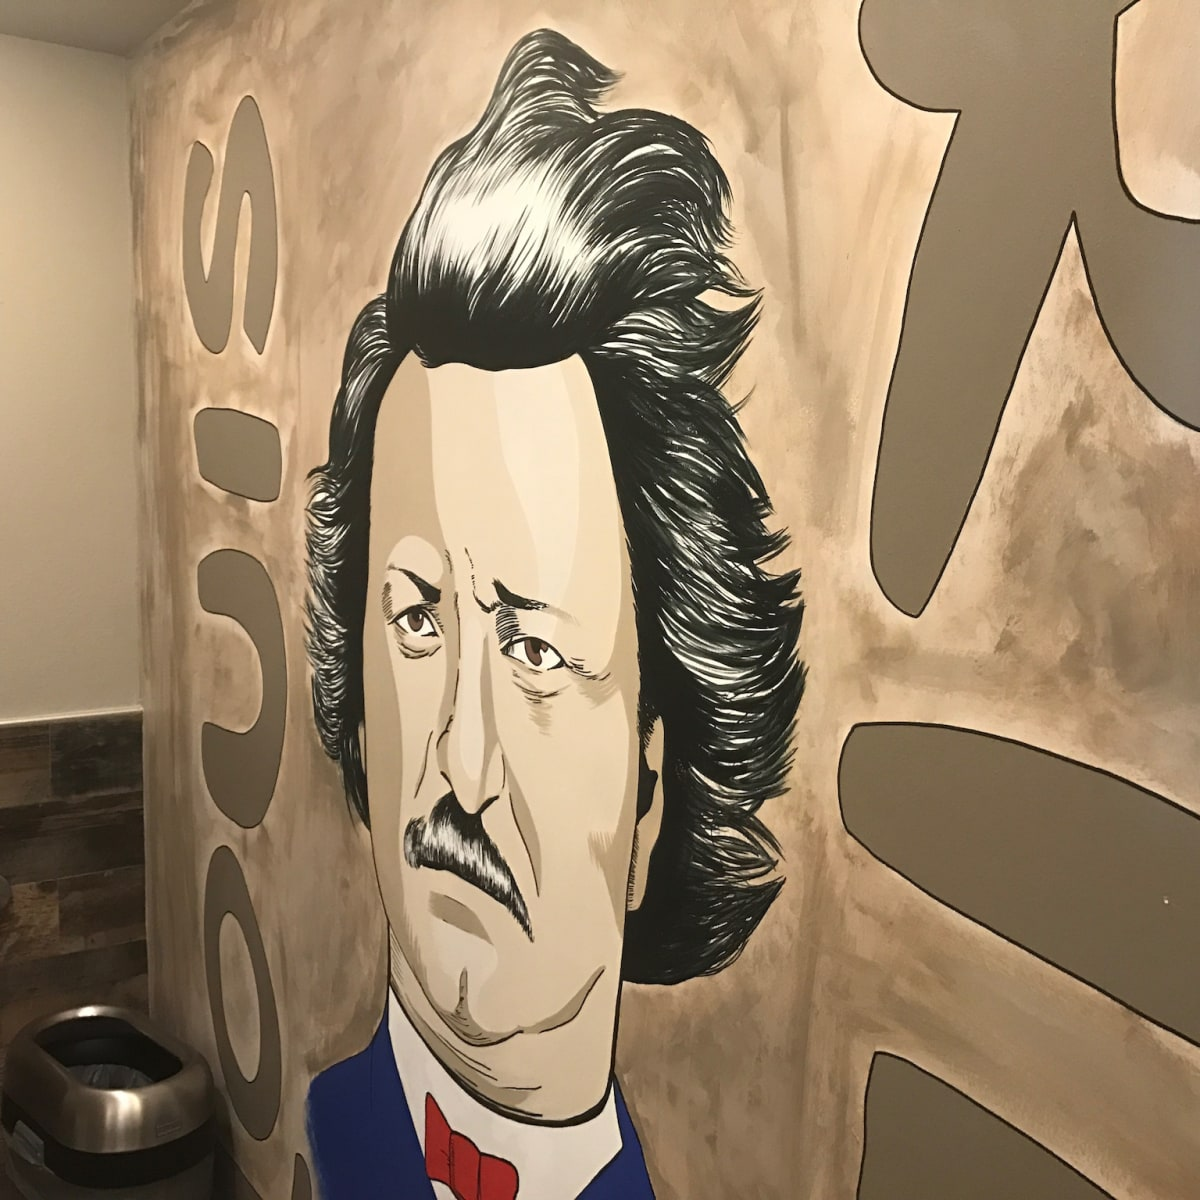 Riel restaurant men's bathroom mural